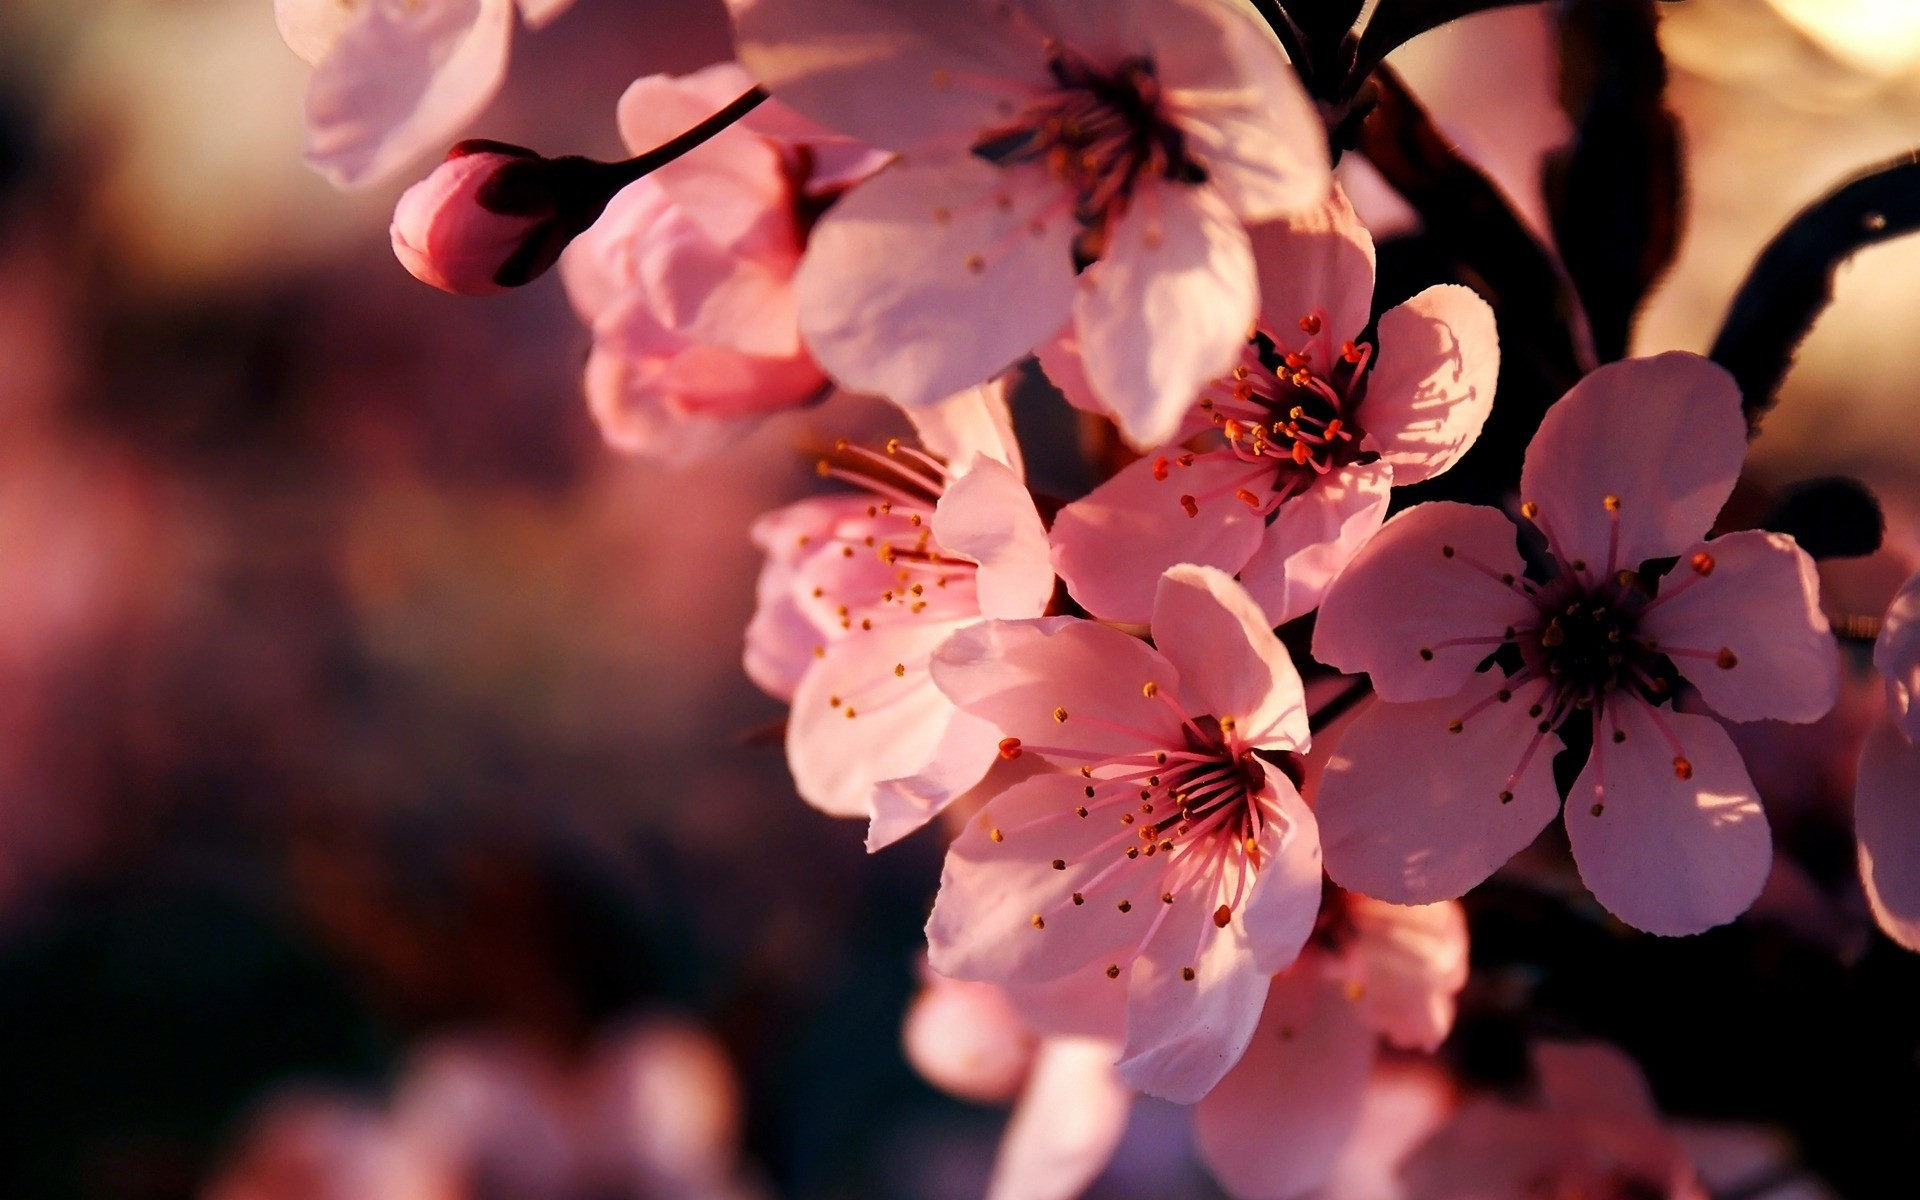 Pink flower wallpapers wallpapersafari pink flowers wallpaper backgrounds 4728 wallpaper cool dhlflorist Choice Image